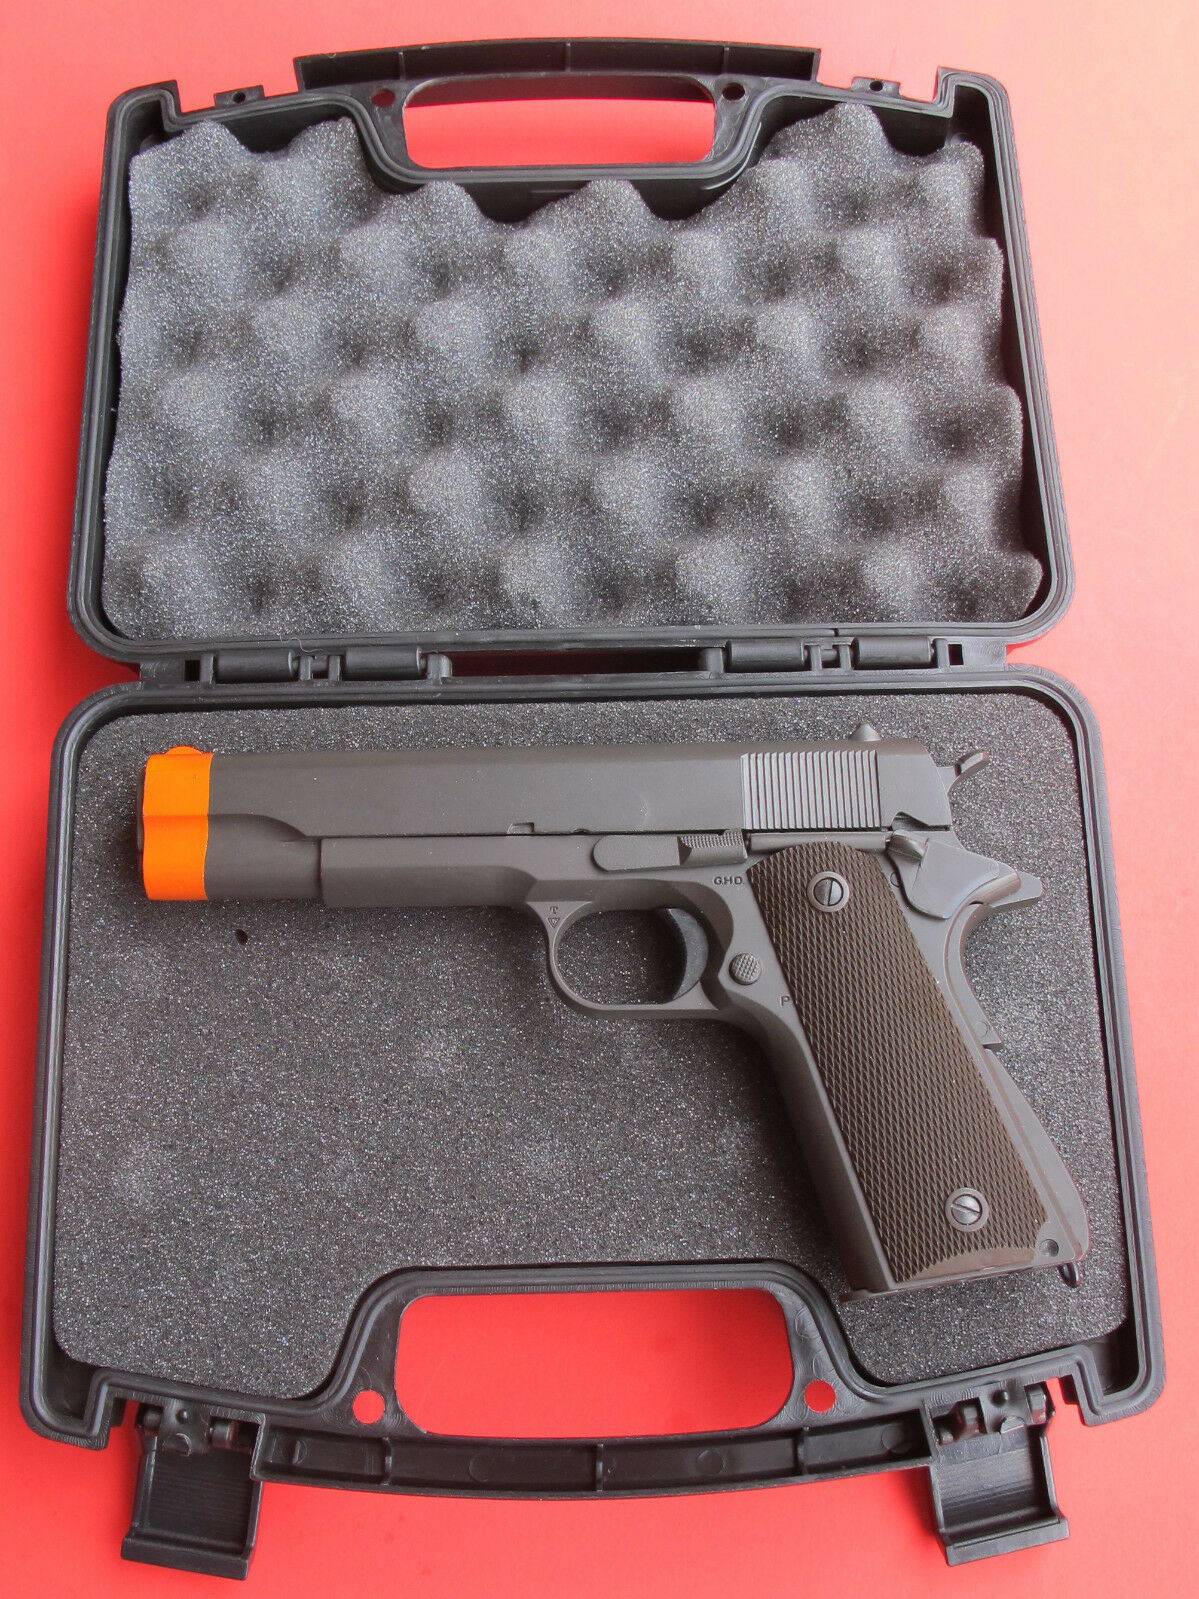 Hard Plastic Hand Gun Storage or Carrying Case with Foam Pad